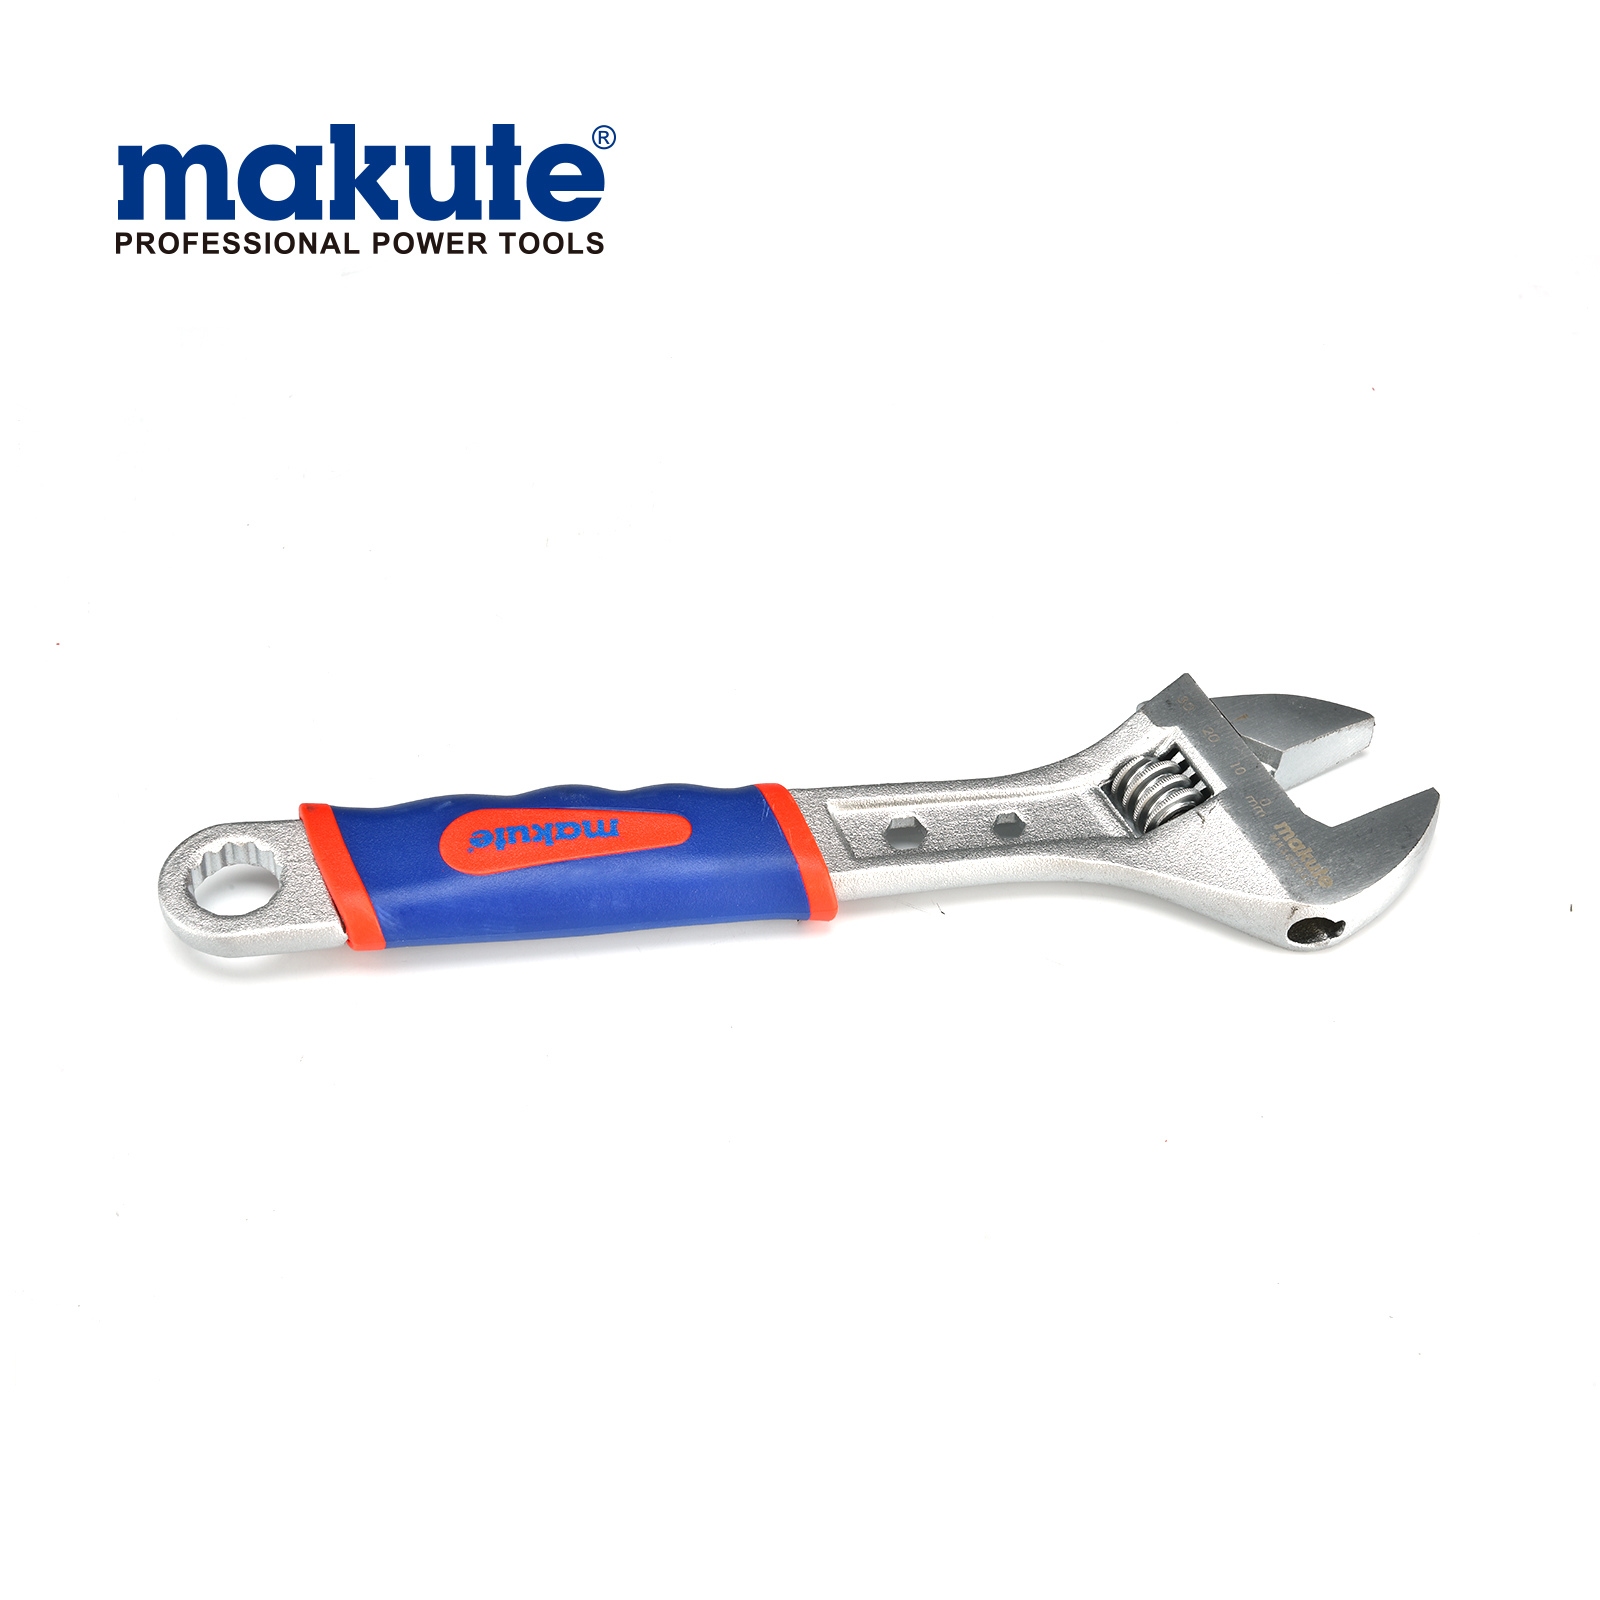 "Adjustable wrench 300mm(12"") MK101012 adjustable 12 Inches Spanner Wrenches"